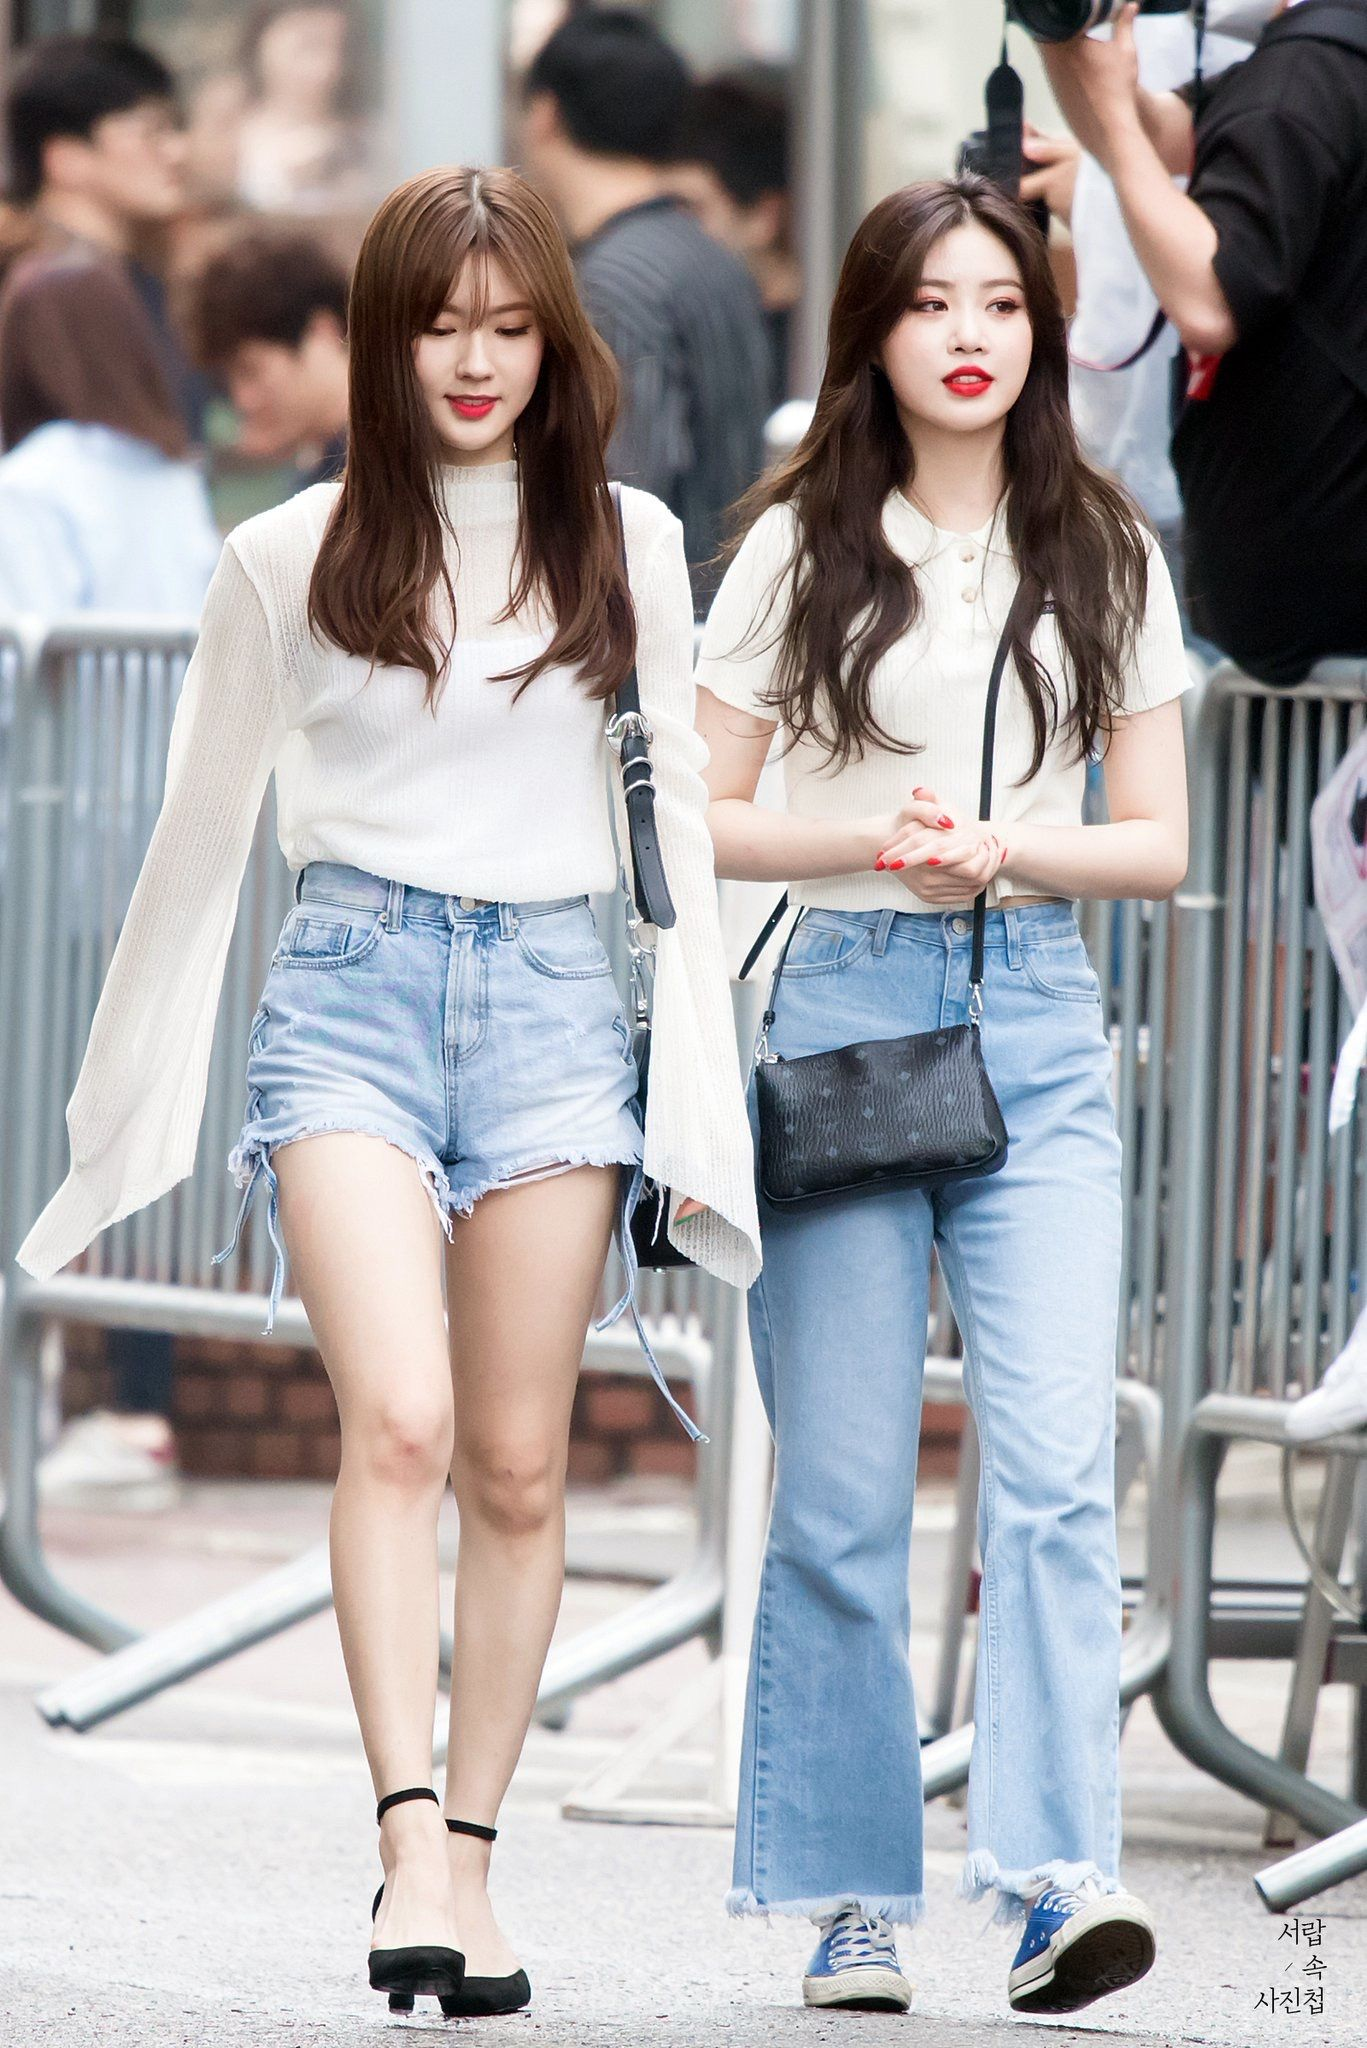 Pin By Jennymarie On G Idle Korean Airport Fashion Kpop Fashion Kpop Fashion Outfits